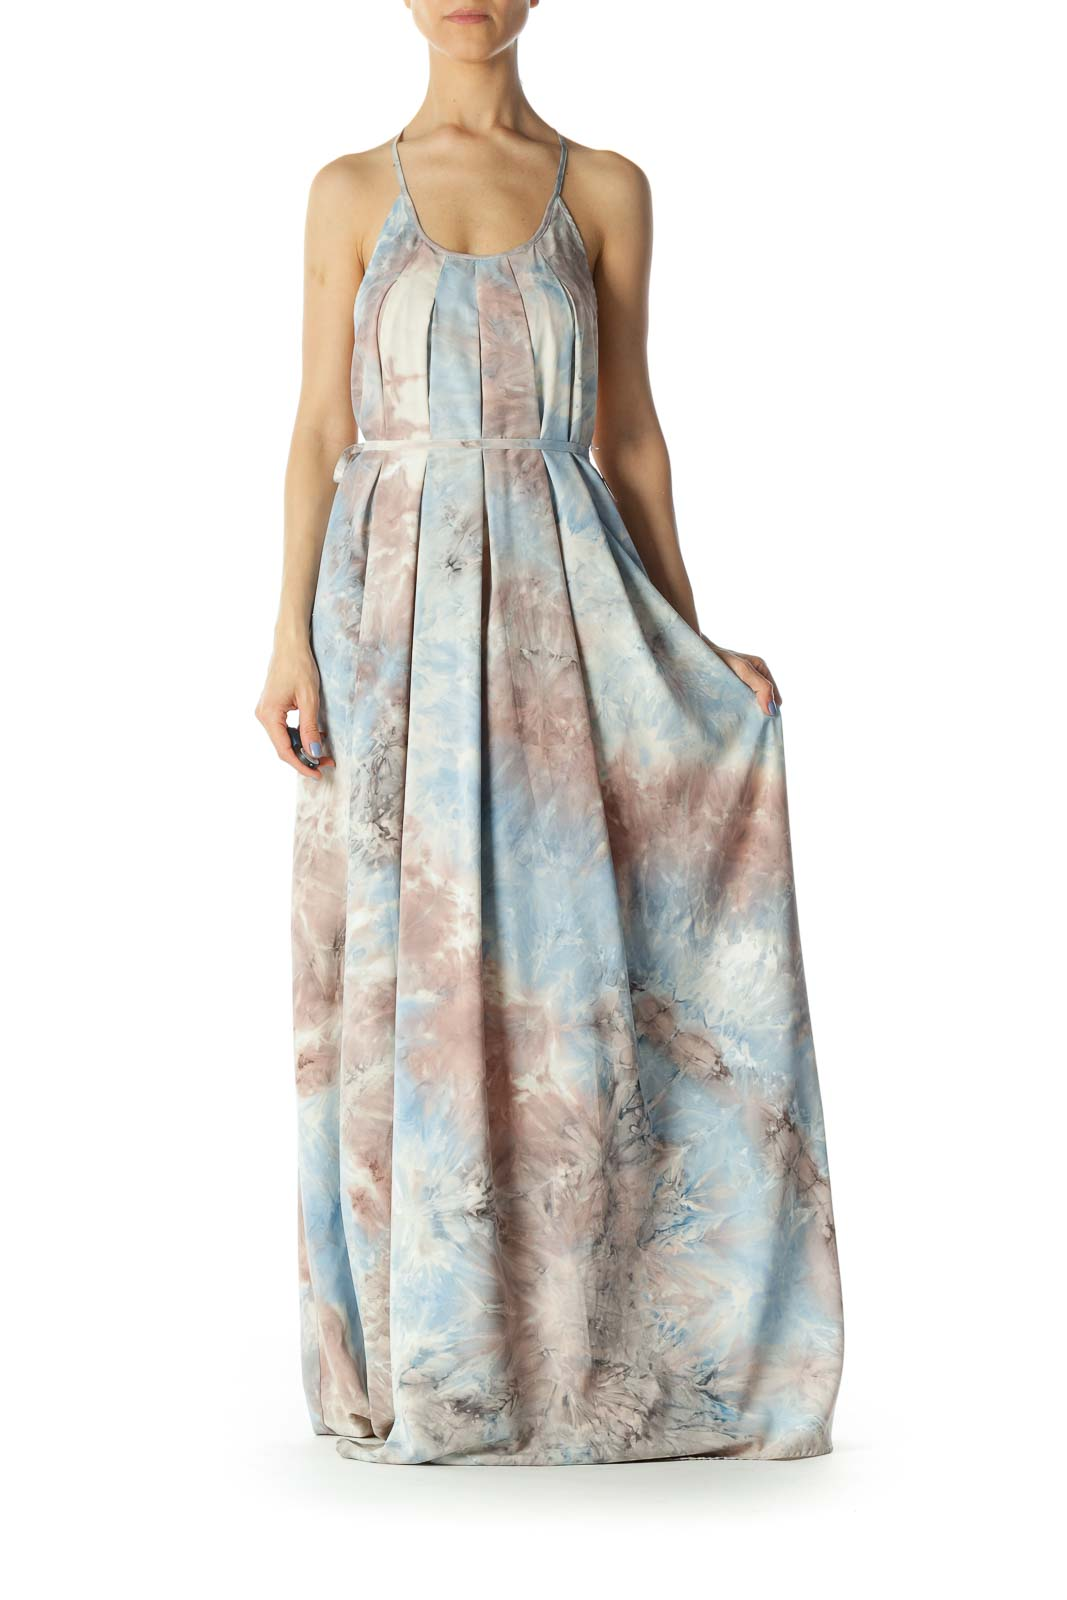 Light Blue/Pink/Gray Print Round-Neck Back Embroidered Strap Long Dress